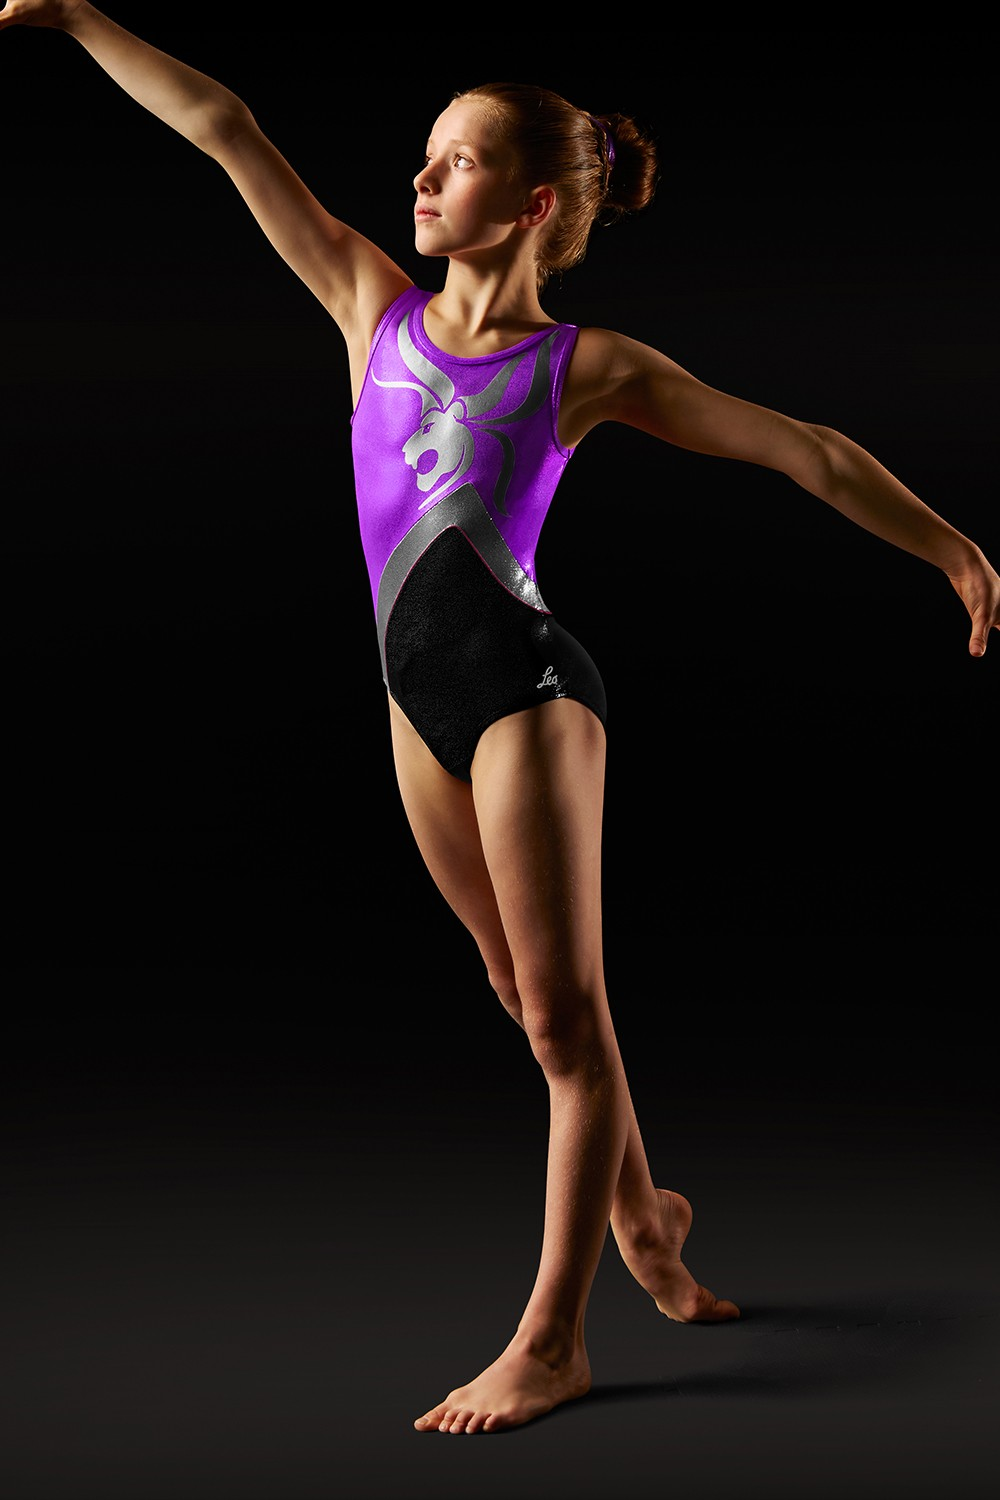 Body De Alças Grossas Com Motivo De Leão - Leo Women's Gymnastics Leotards